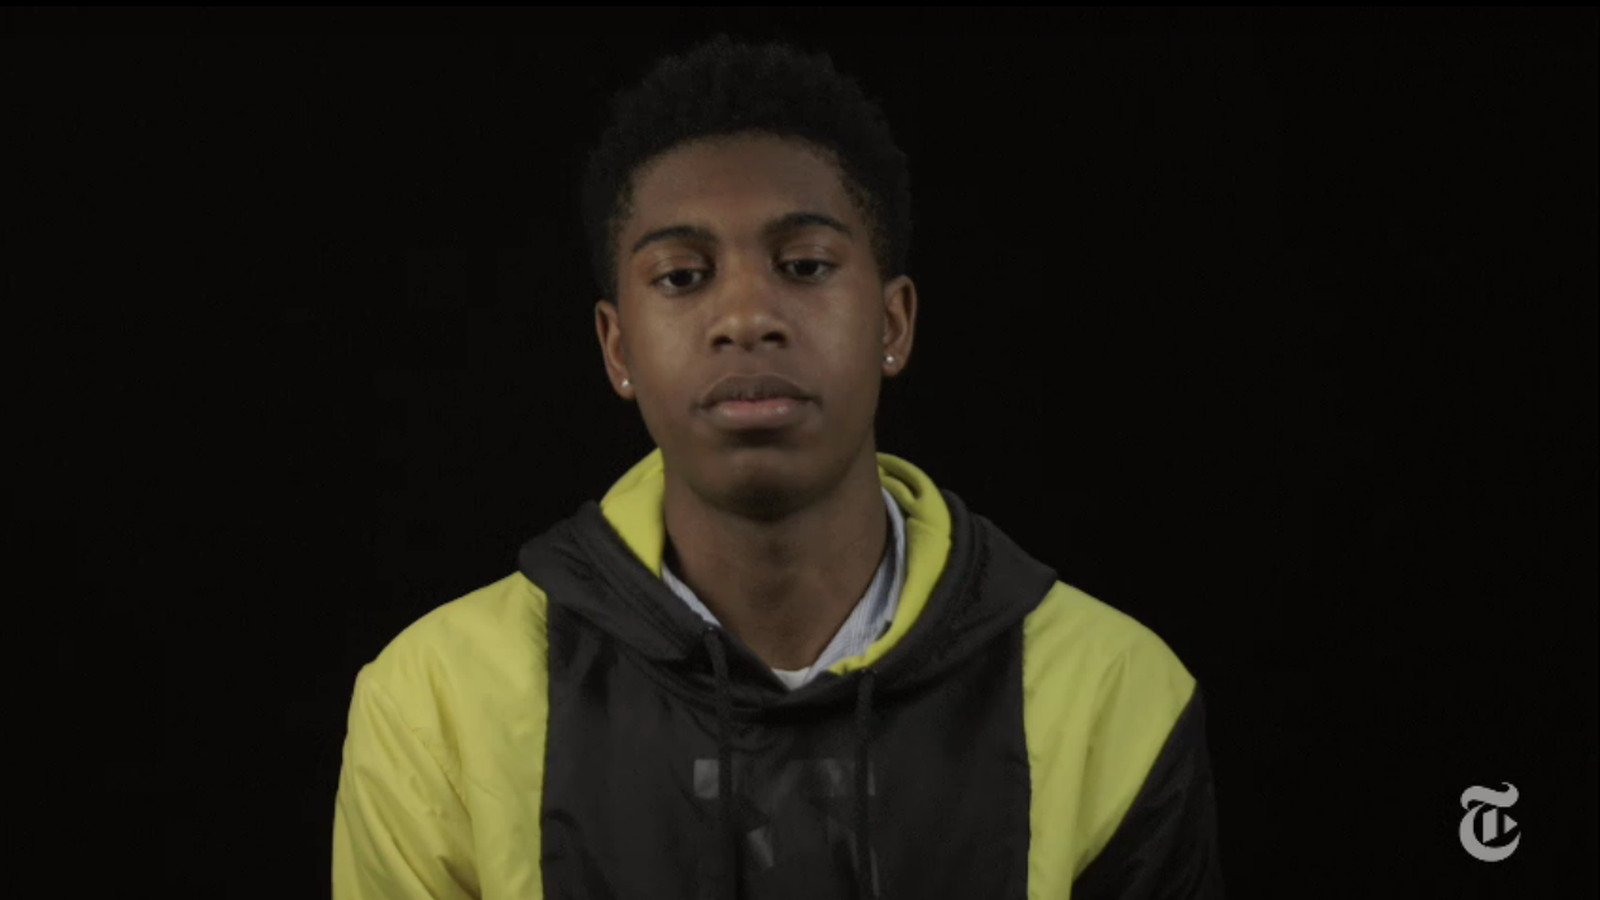 Watch Young Black Boys And Men Explain The Racism They -3792